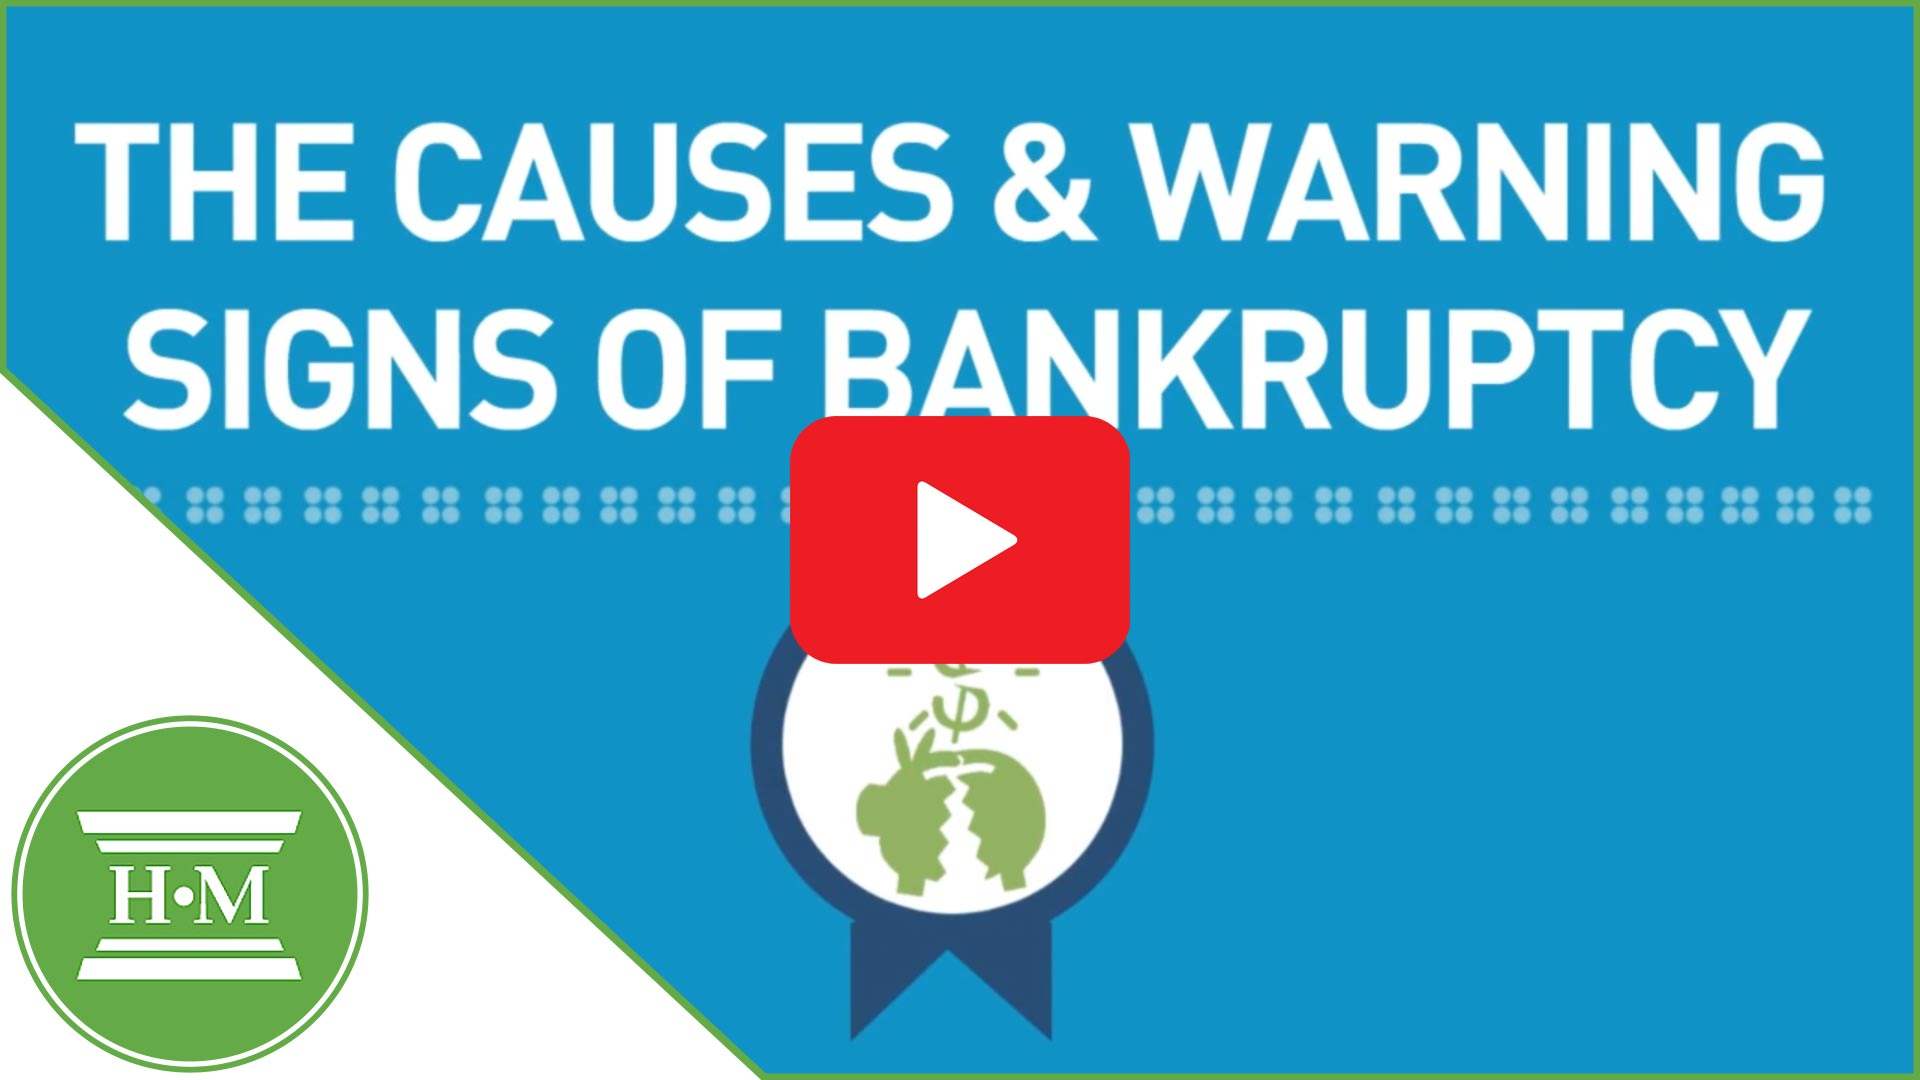 Causes and warning signs of bankruptcy